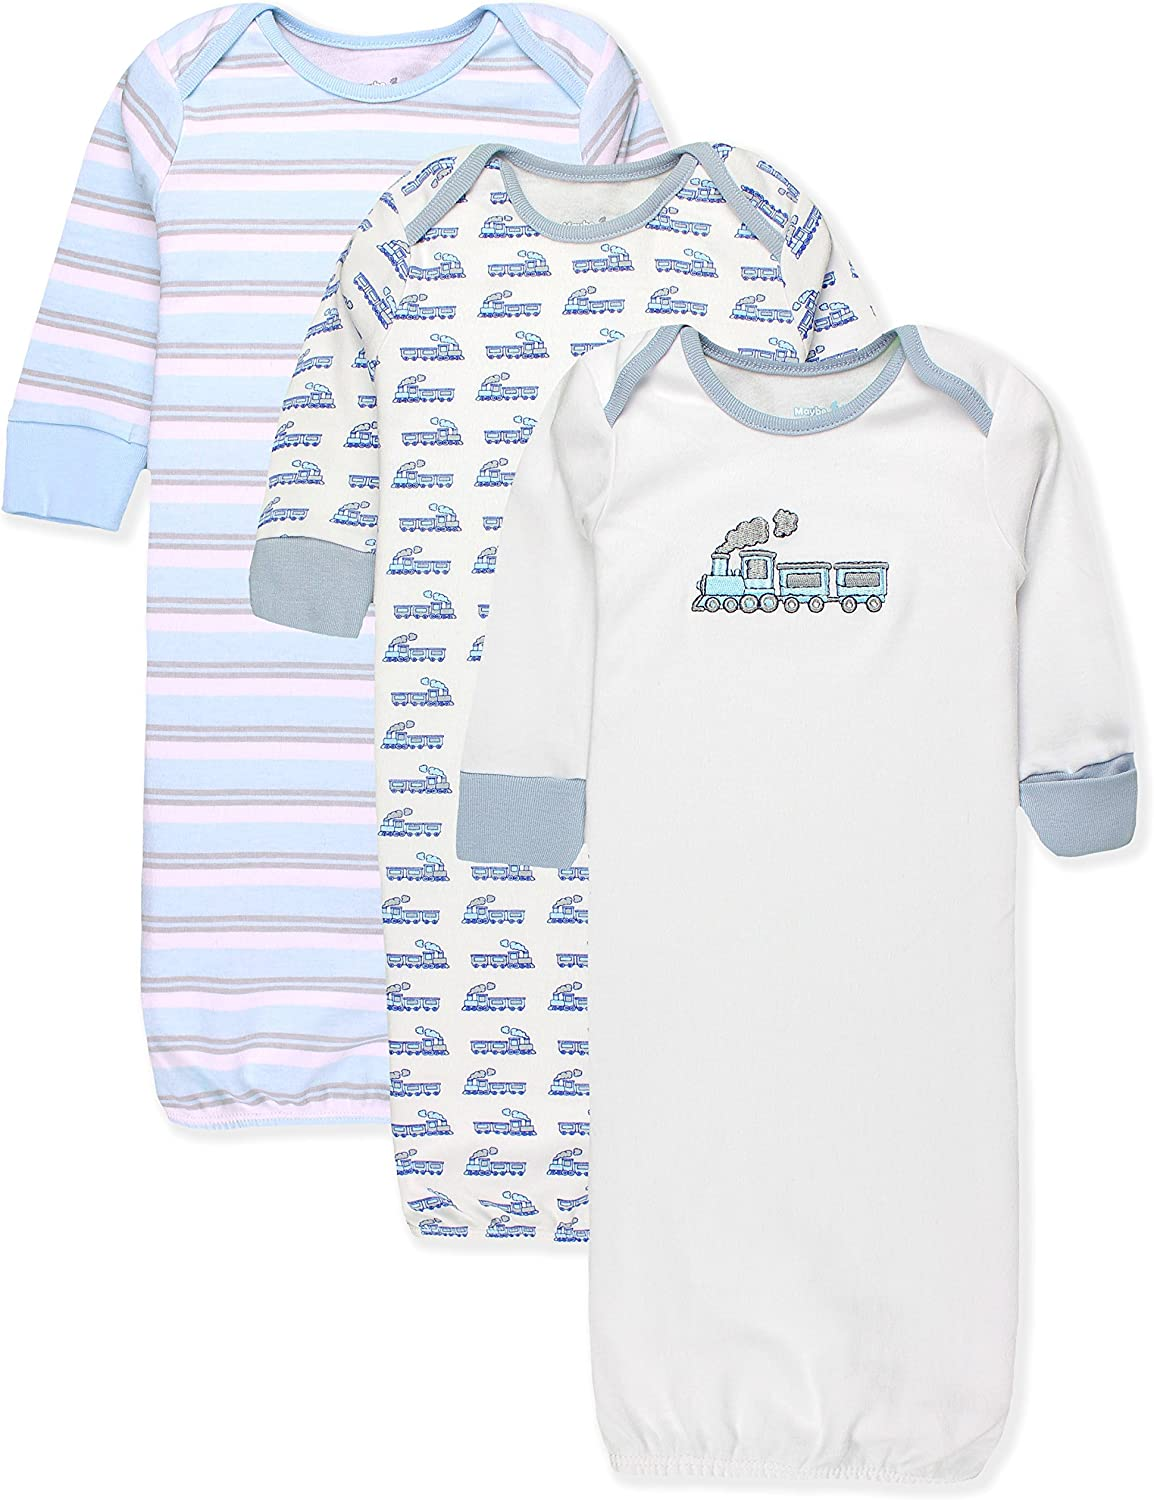 Maybe Baby Kids Infant Boys and Girls 3 Pack Set Cotton Baby Nightgowns w//Mitten Cuffs 0-6 Months